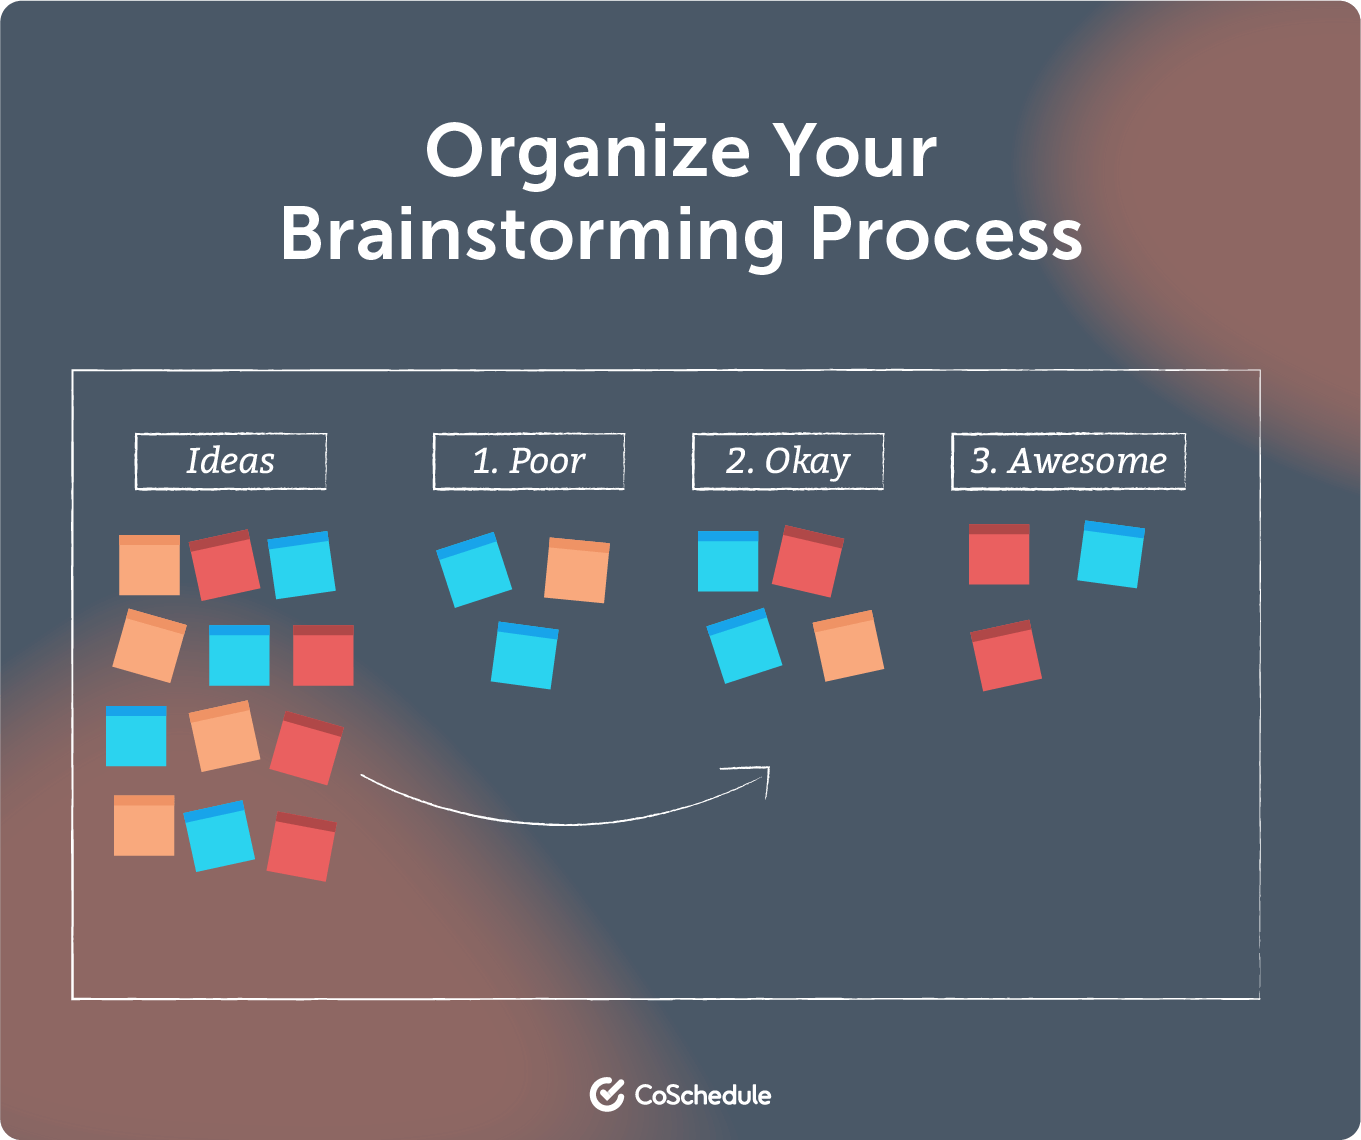 Organize your brainstorming process